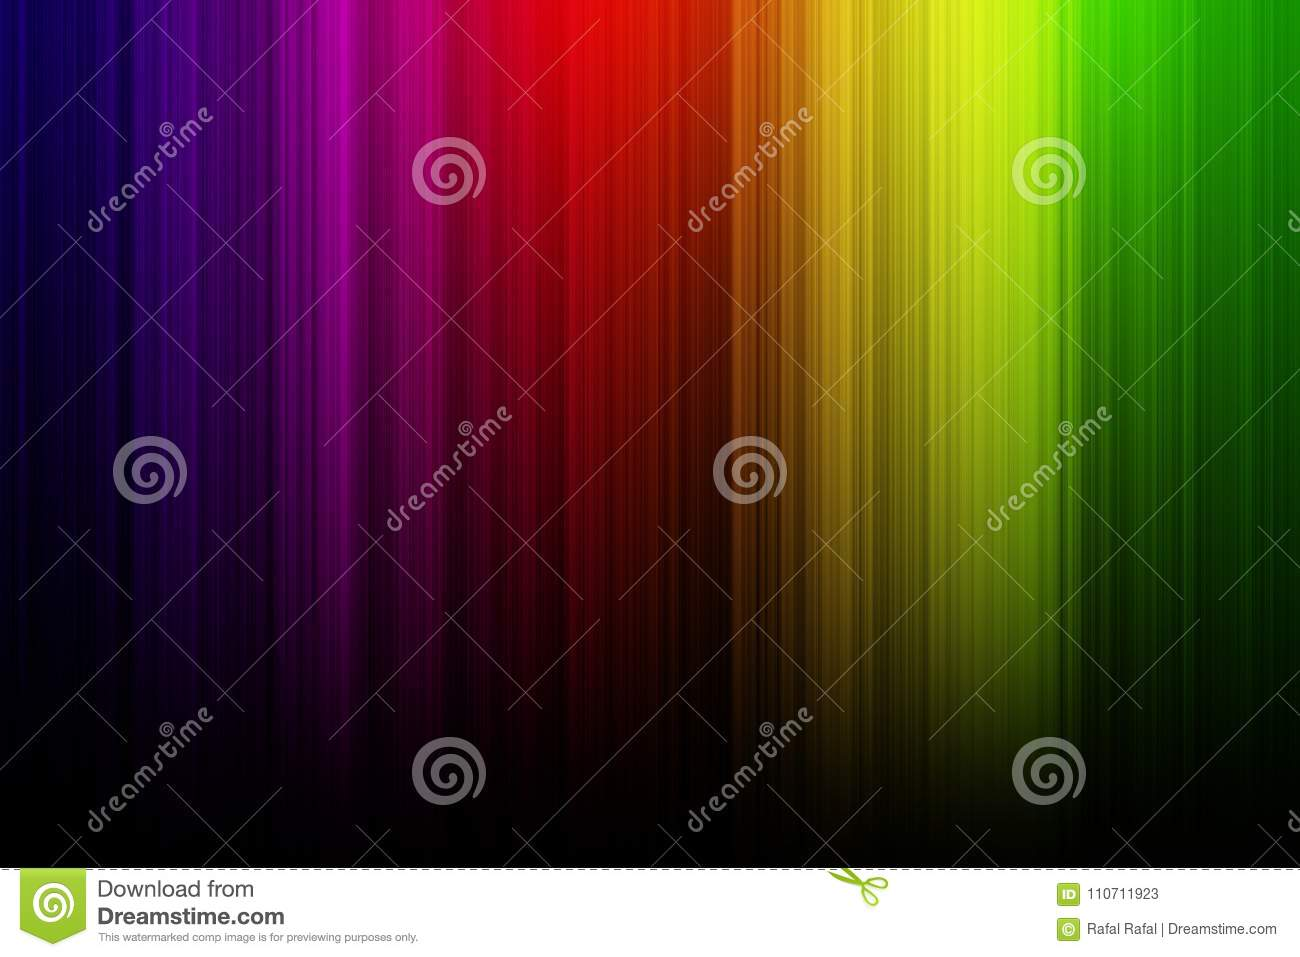 Abstract Blurred Colorful Wallpaper With Black Background Stock Illustration Illustration Of Element Decorative 110711923